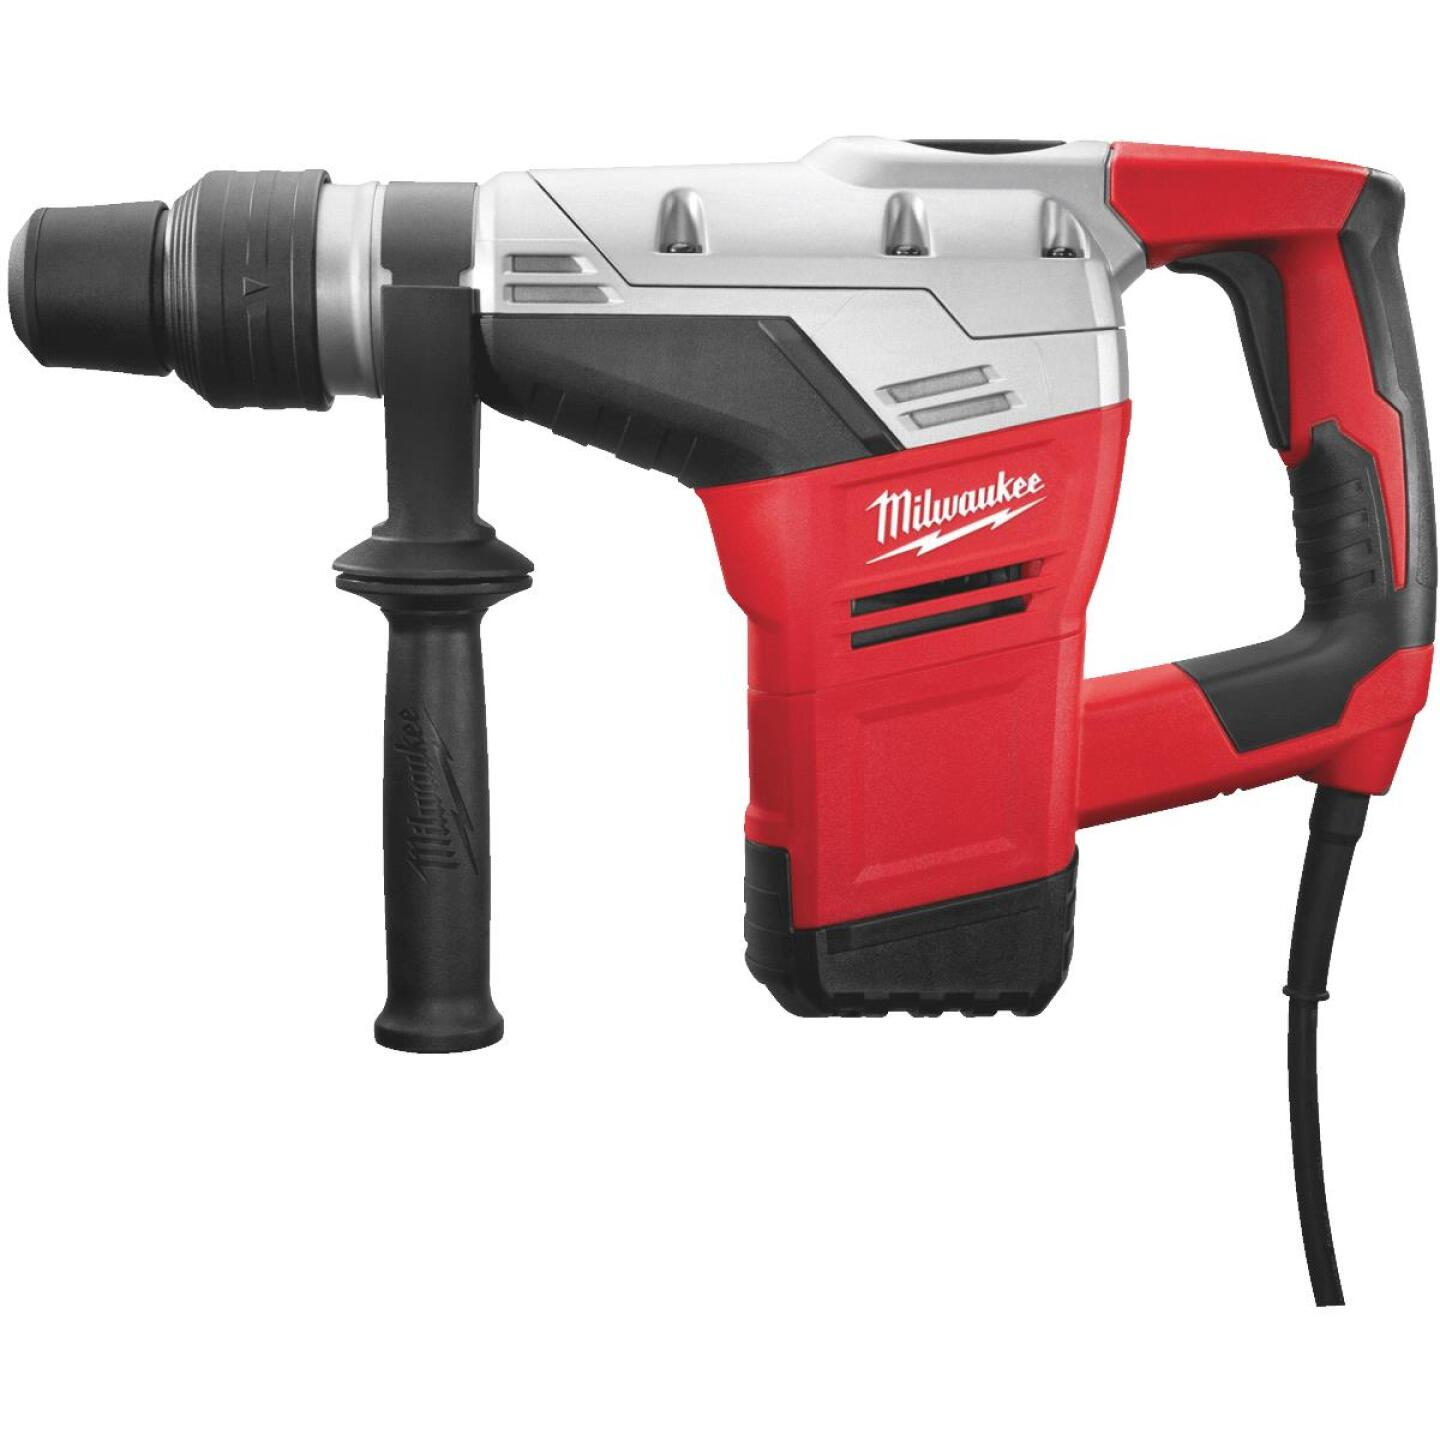 Milwaukee 1-9/16 In. SDS-Max Keyless 10.5-Amp Electric Rotary Hammer Drill Image 1